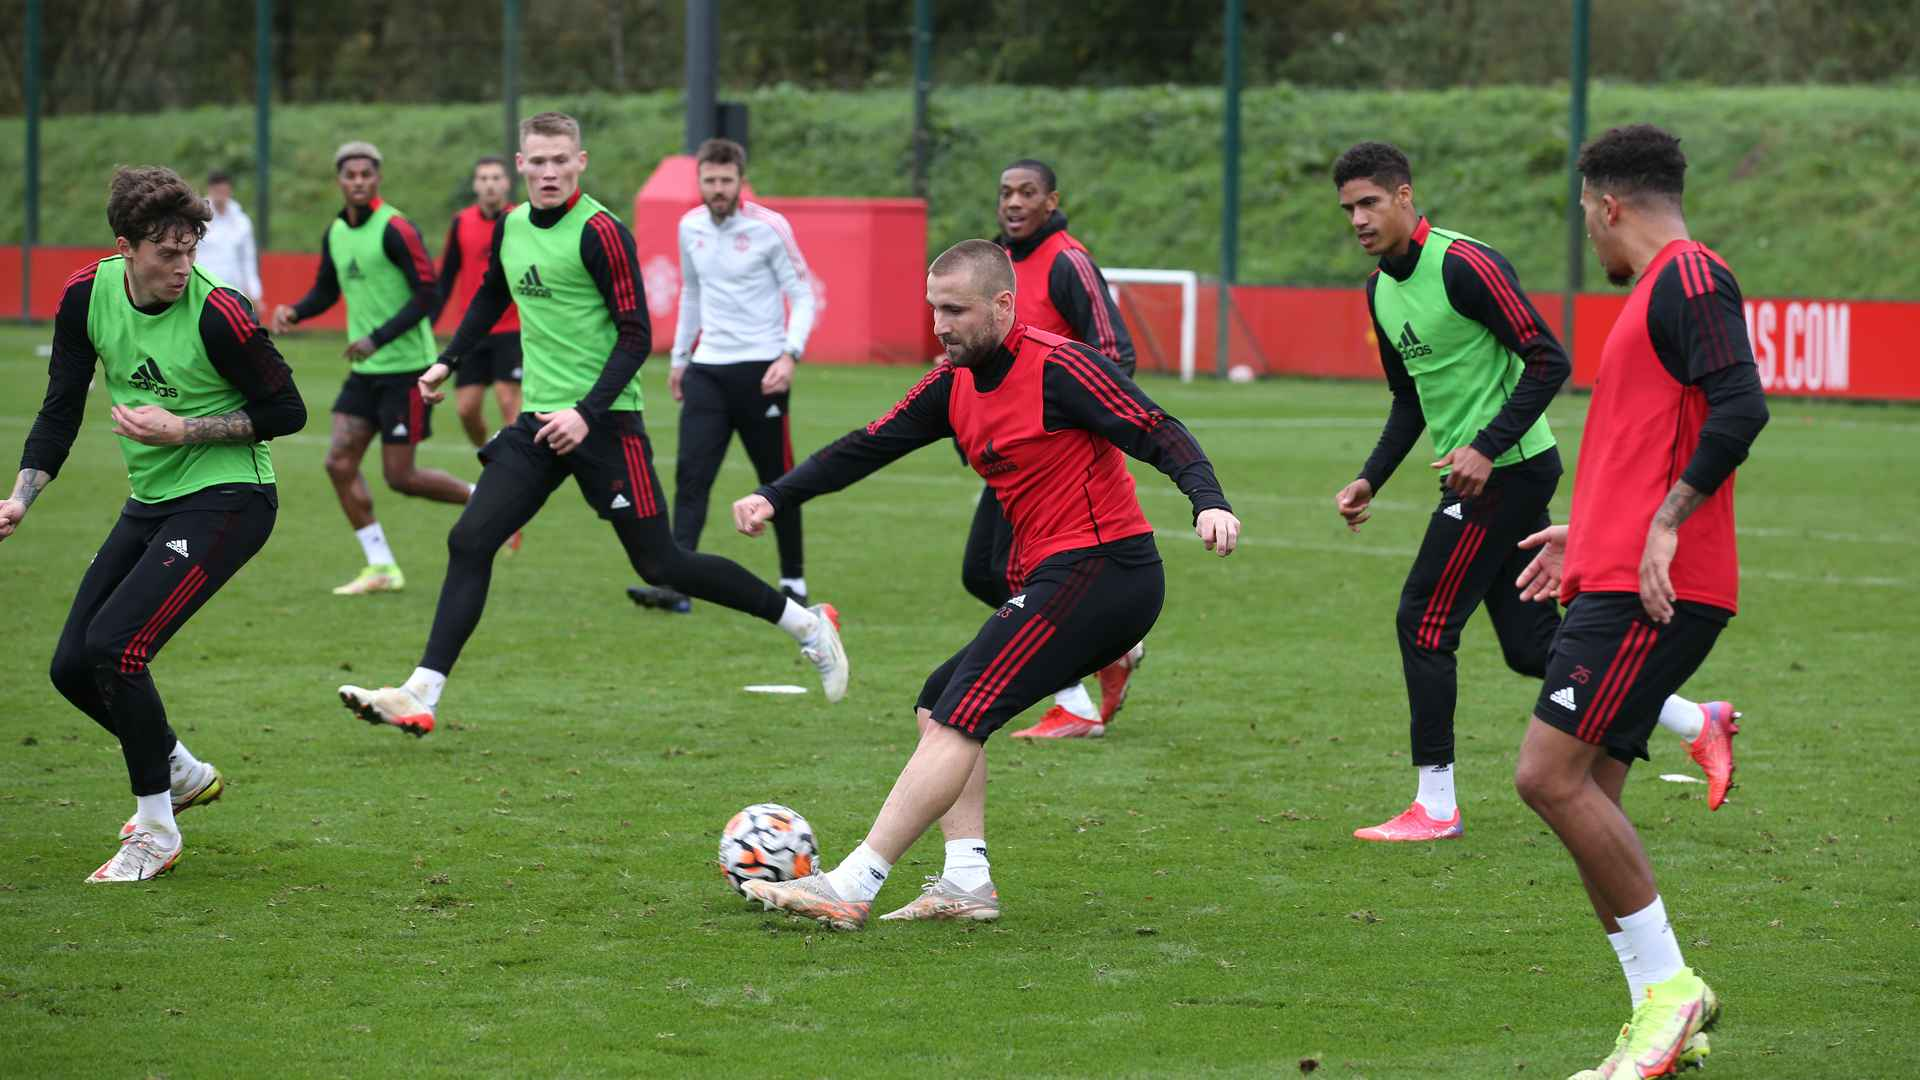 Training at Carrington pictures 27 October 2021